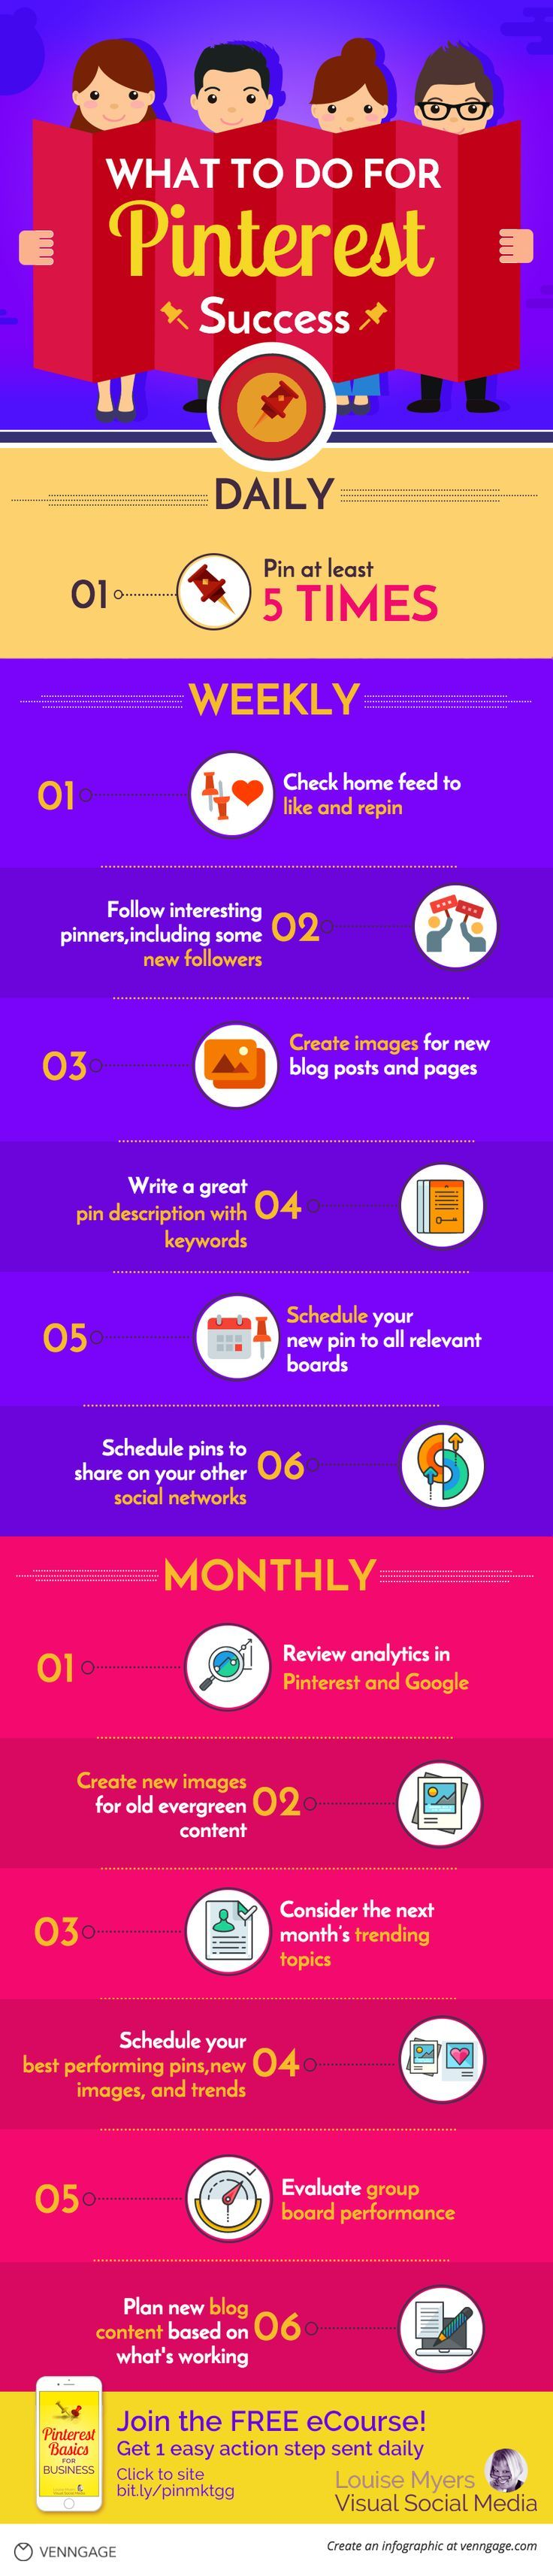 Pinterest Marketing Tips: There's only ONE thing you need to do to succeed on Pinterest: be consistent. Click to blog for the easy step-by-step, and FREE e-course! Perfect for bloggers and small business owners. #pinterestmarketing #infographic #smm #socialmediamarketing #pinteresttips